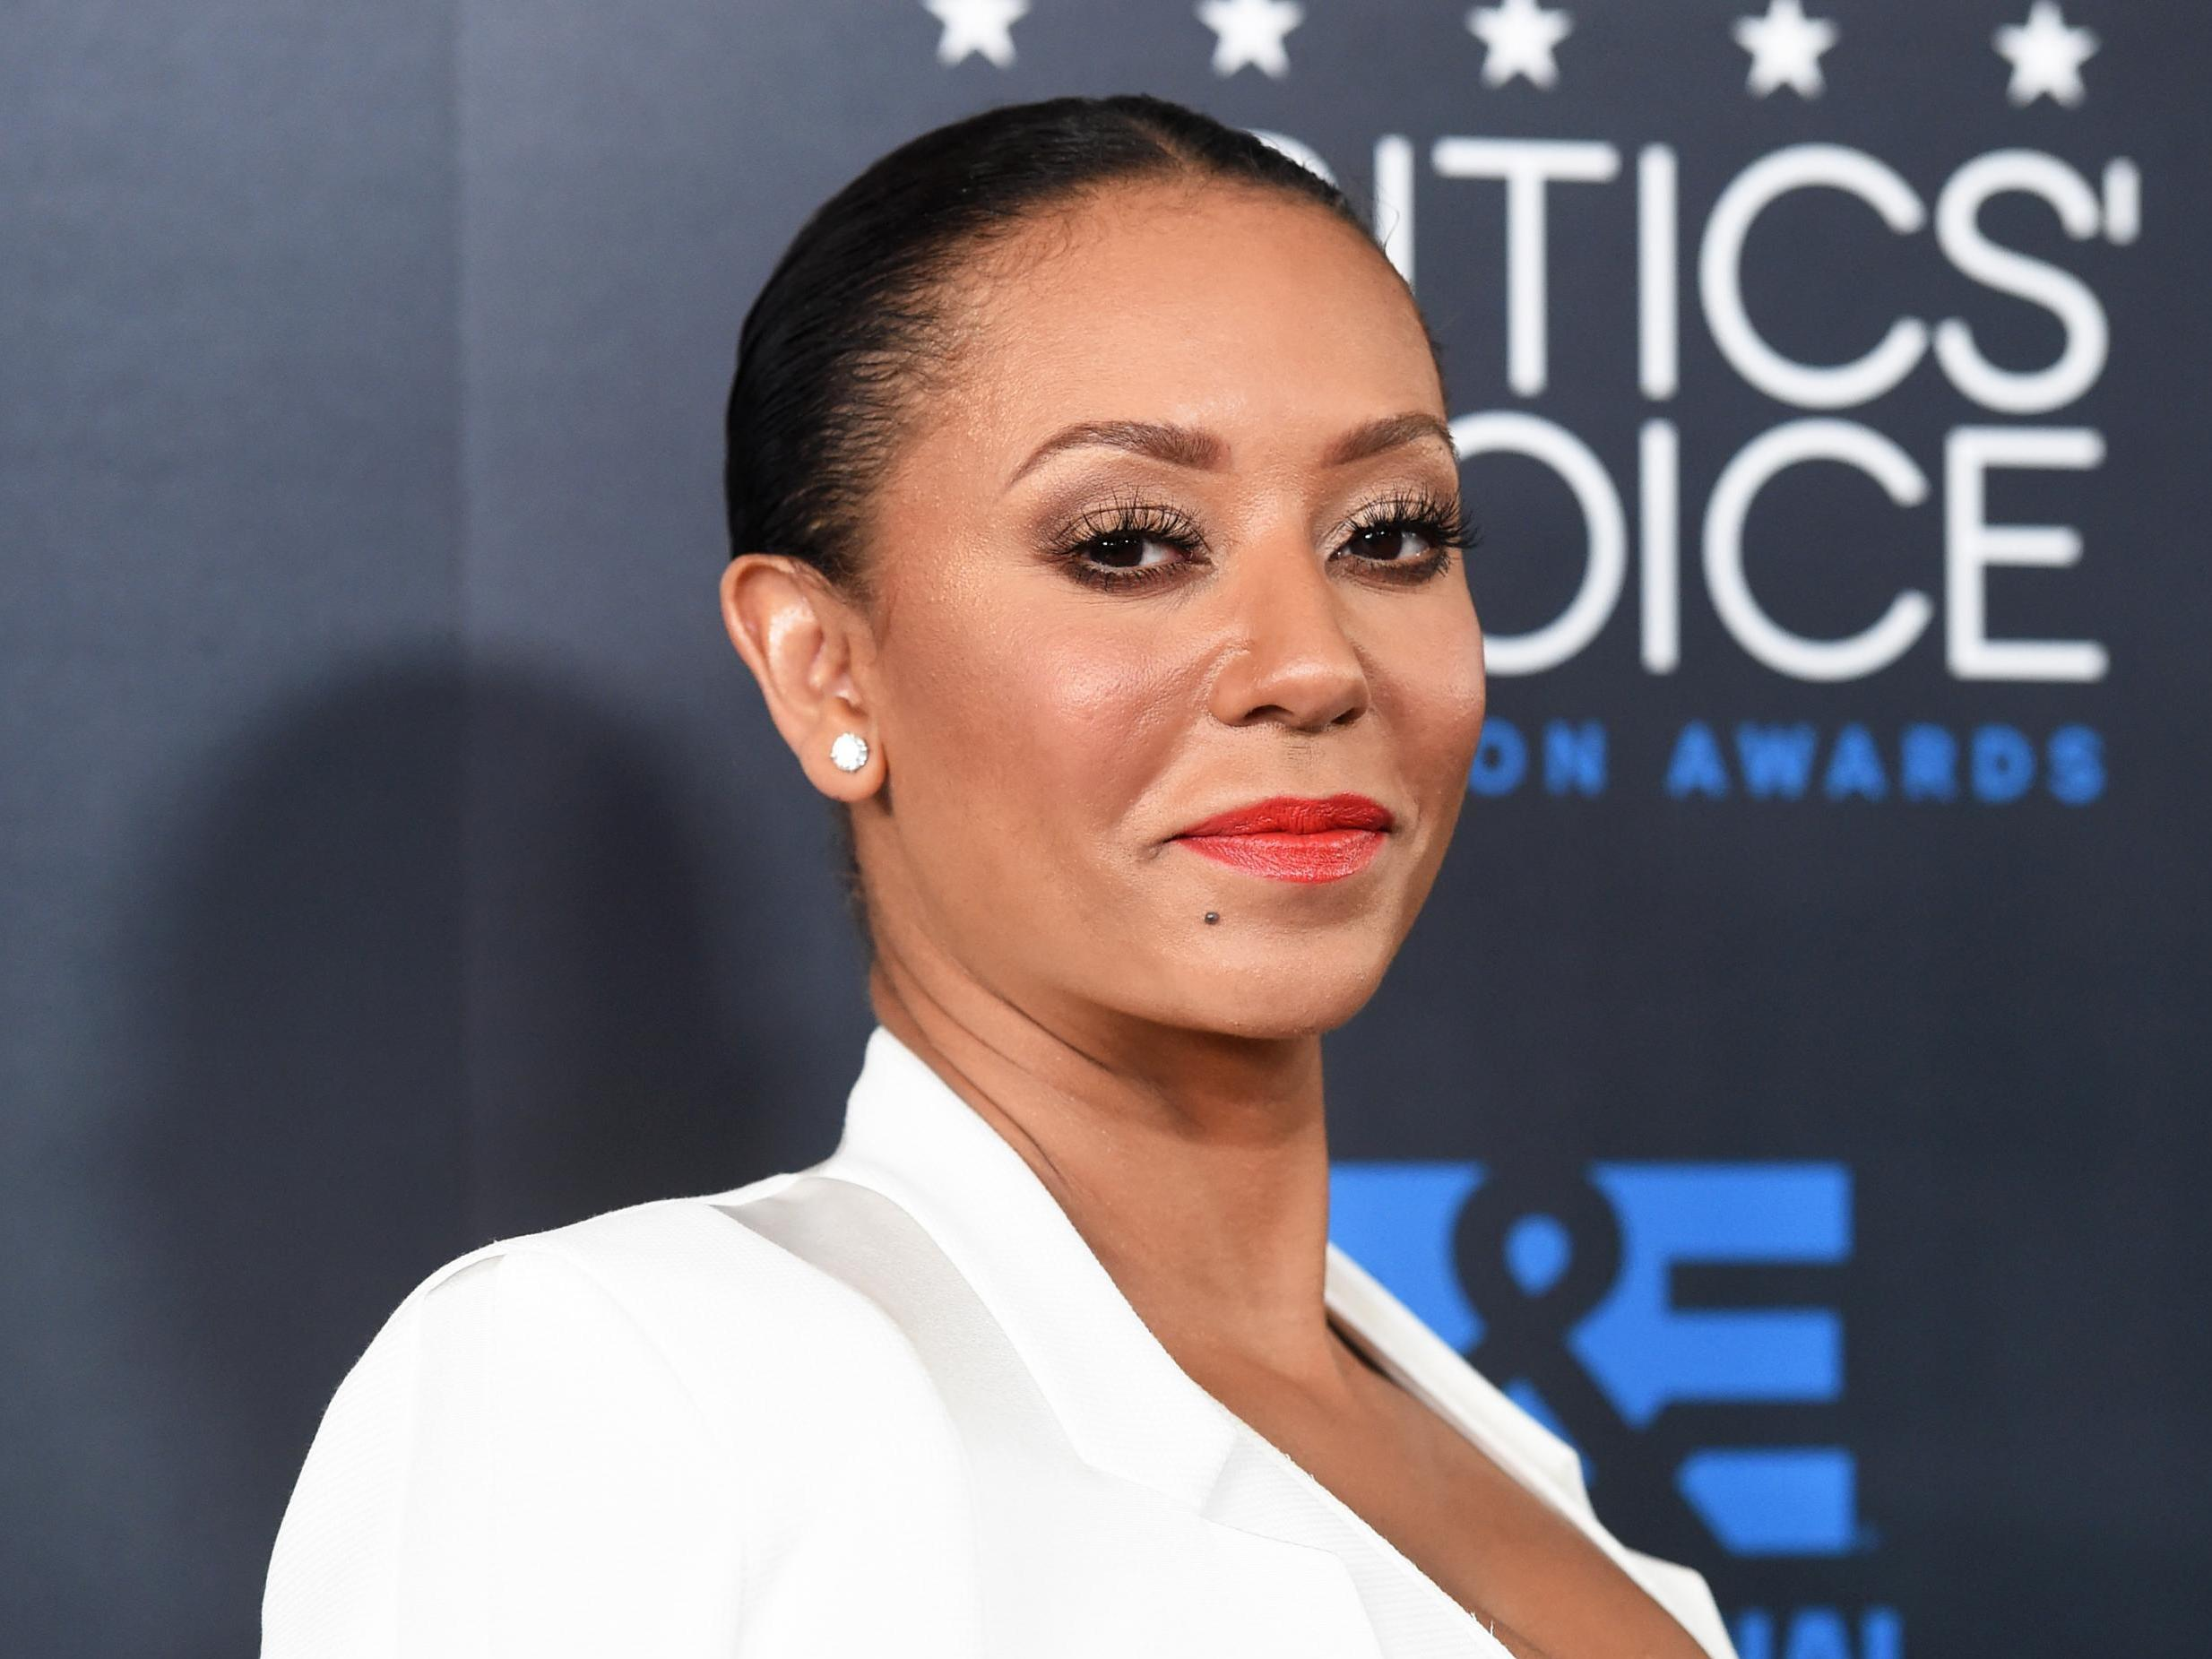 Tesco takes down Mel B advert after Spice Girl's complaint